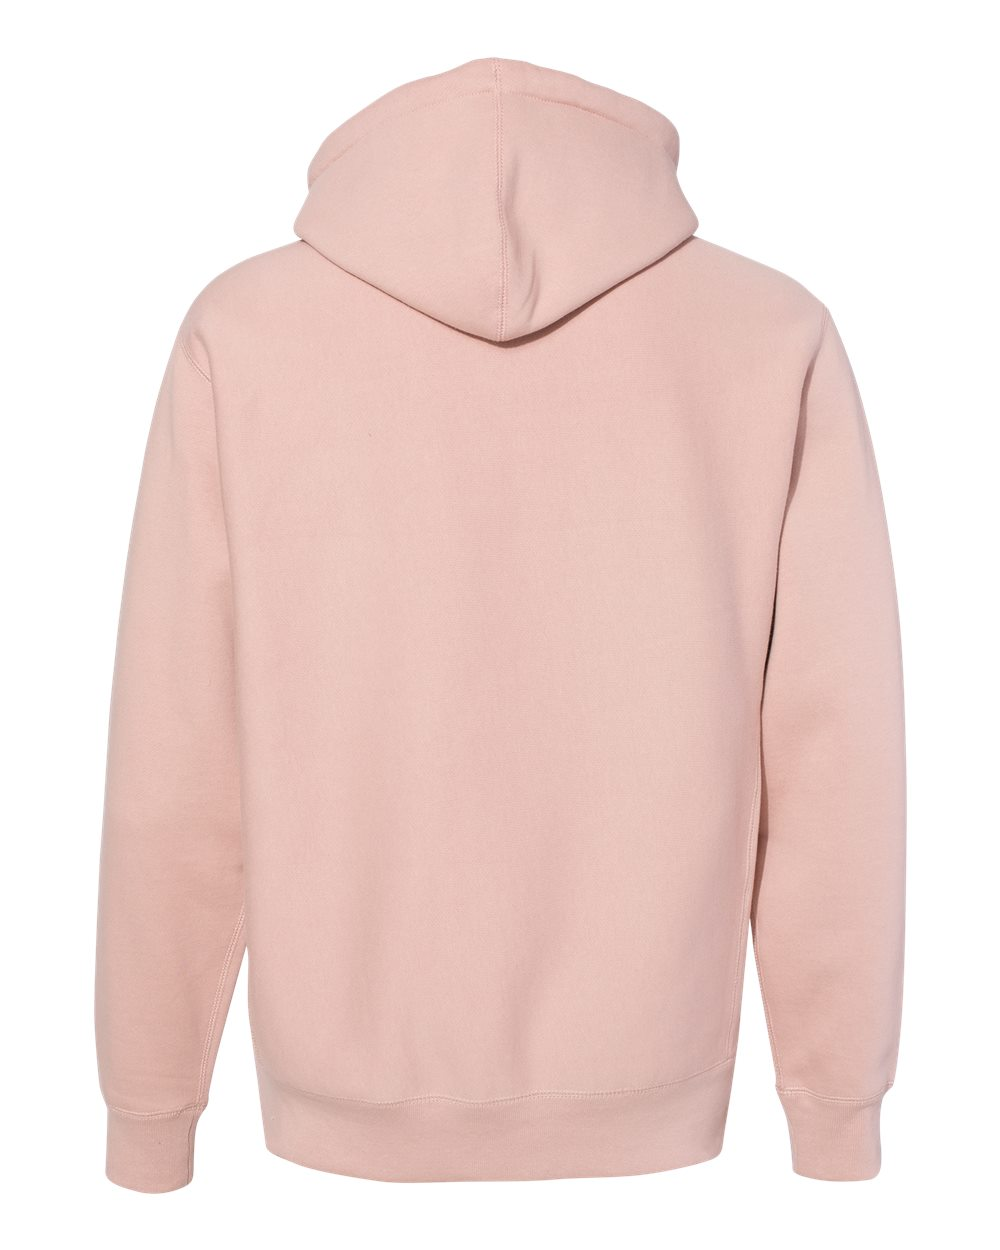 Independent-Trading-Co-Mens-Premium-Heavyweight-Cross-Grain-Hoodie-IND5000P thumbnail 19